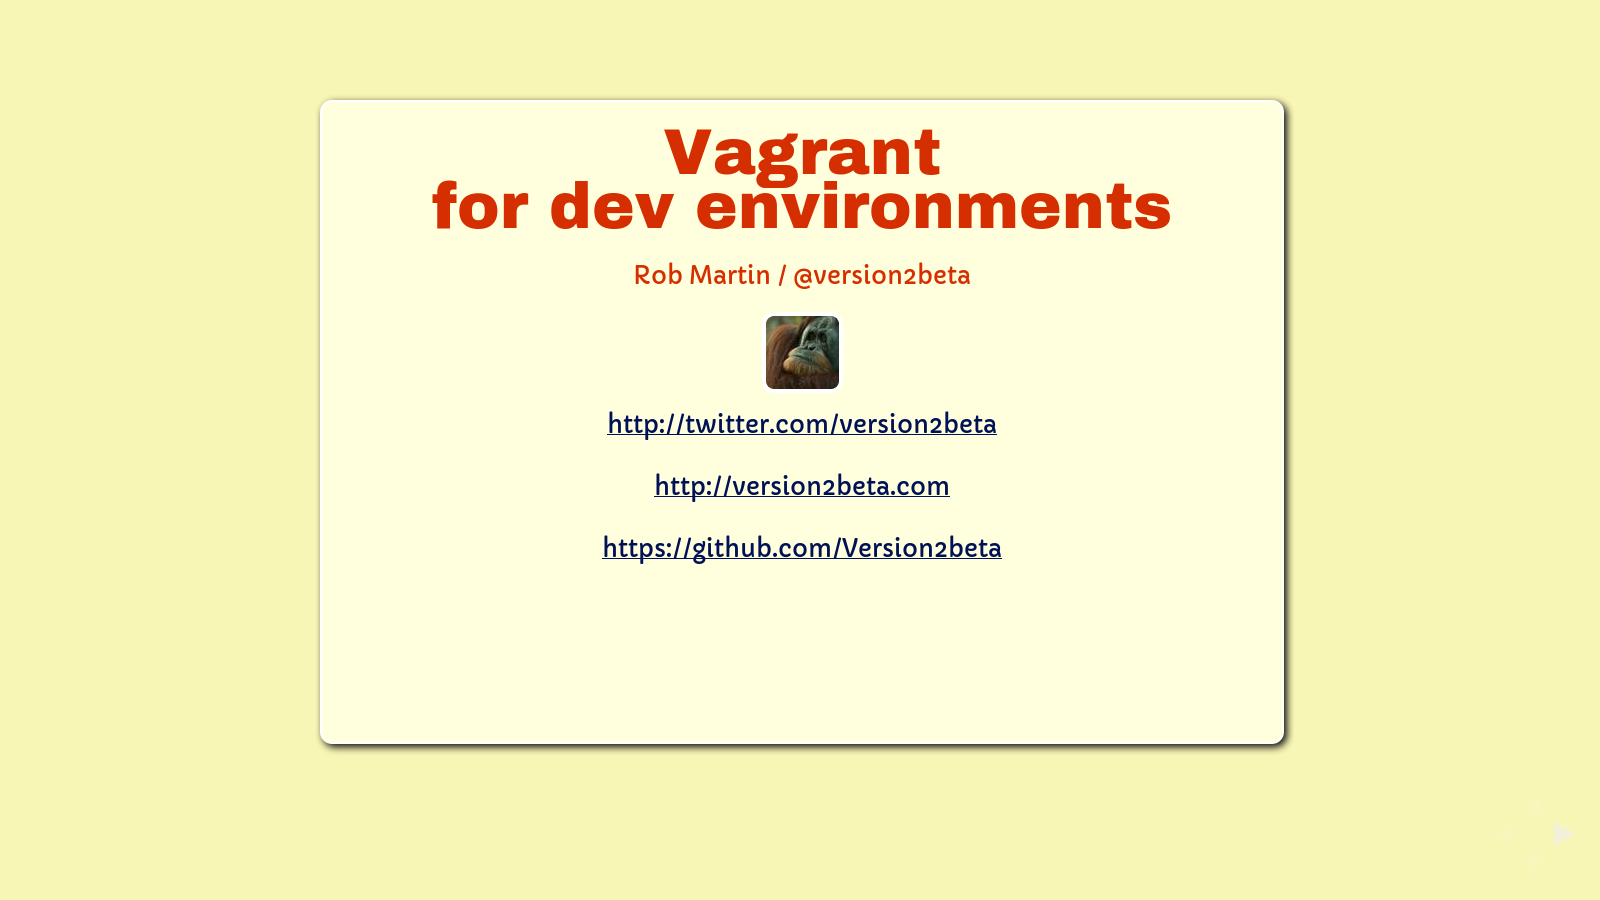 Slide: @version2beta and contact info